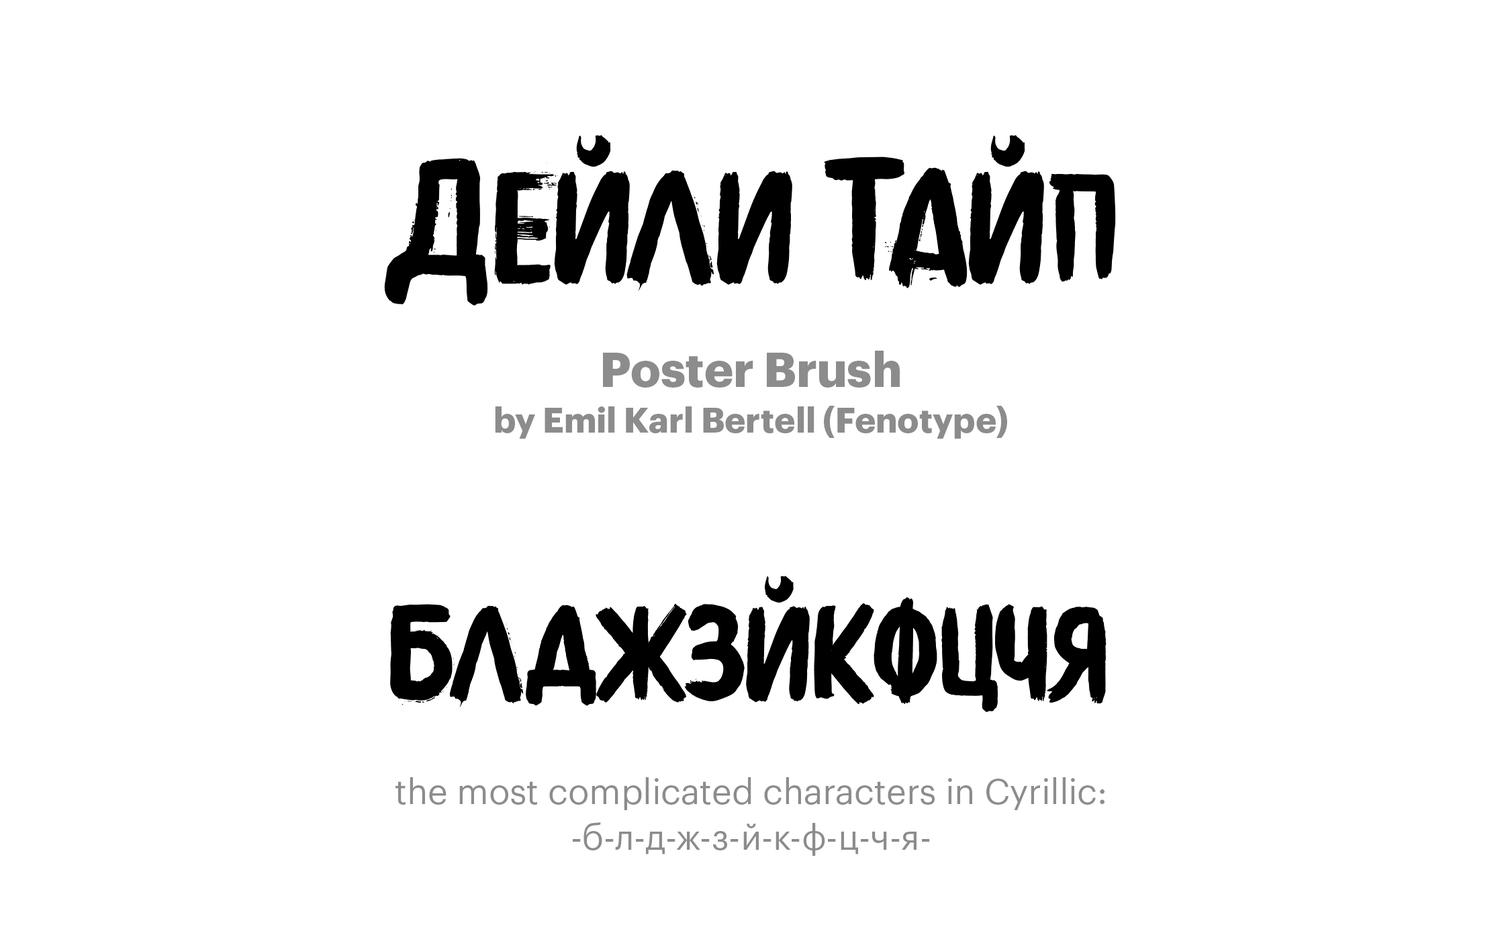 Poster-Brush-by-Emil-Karl-Bertell-(Fenotype)